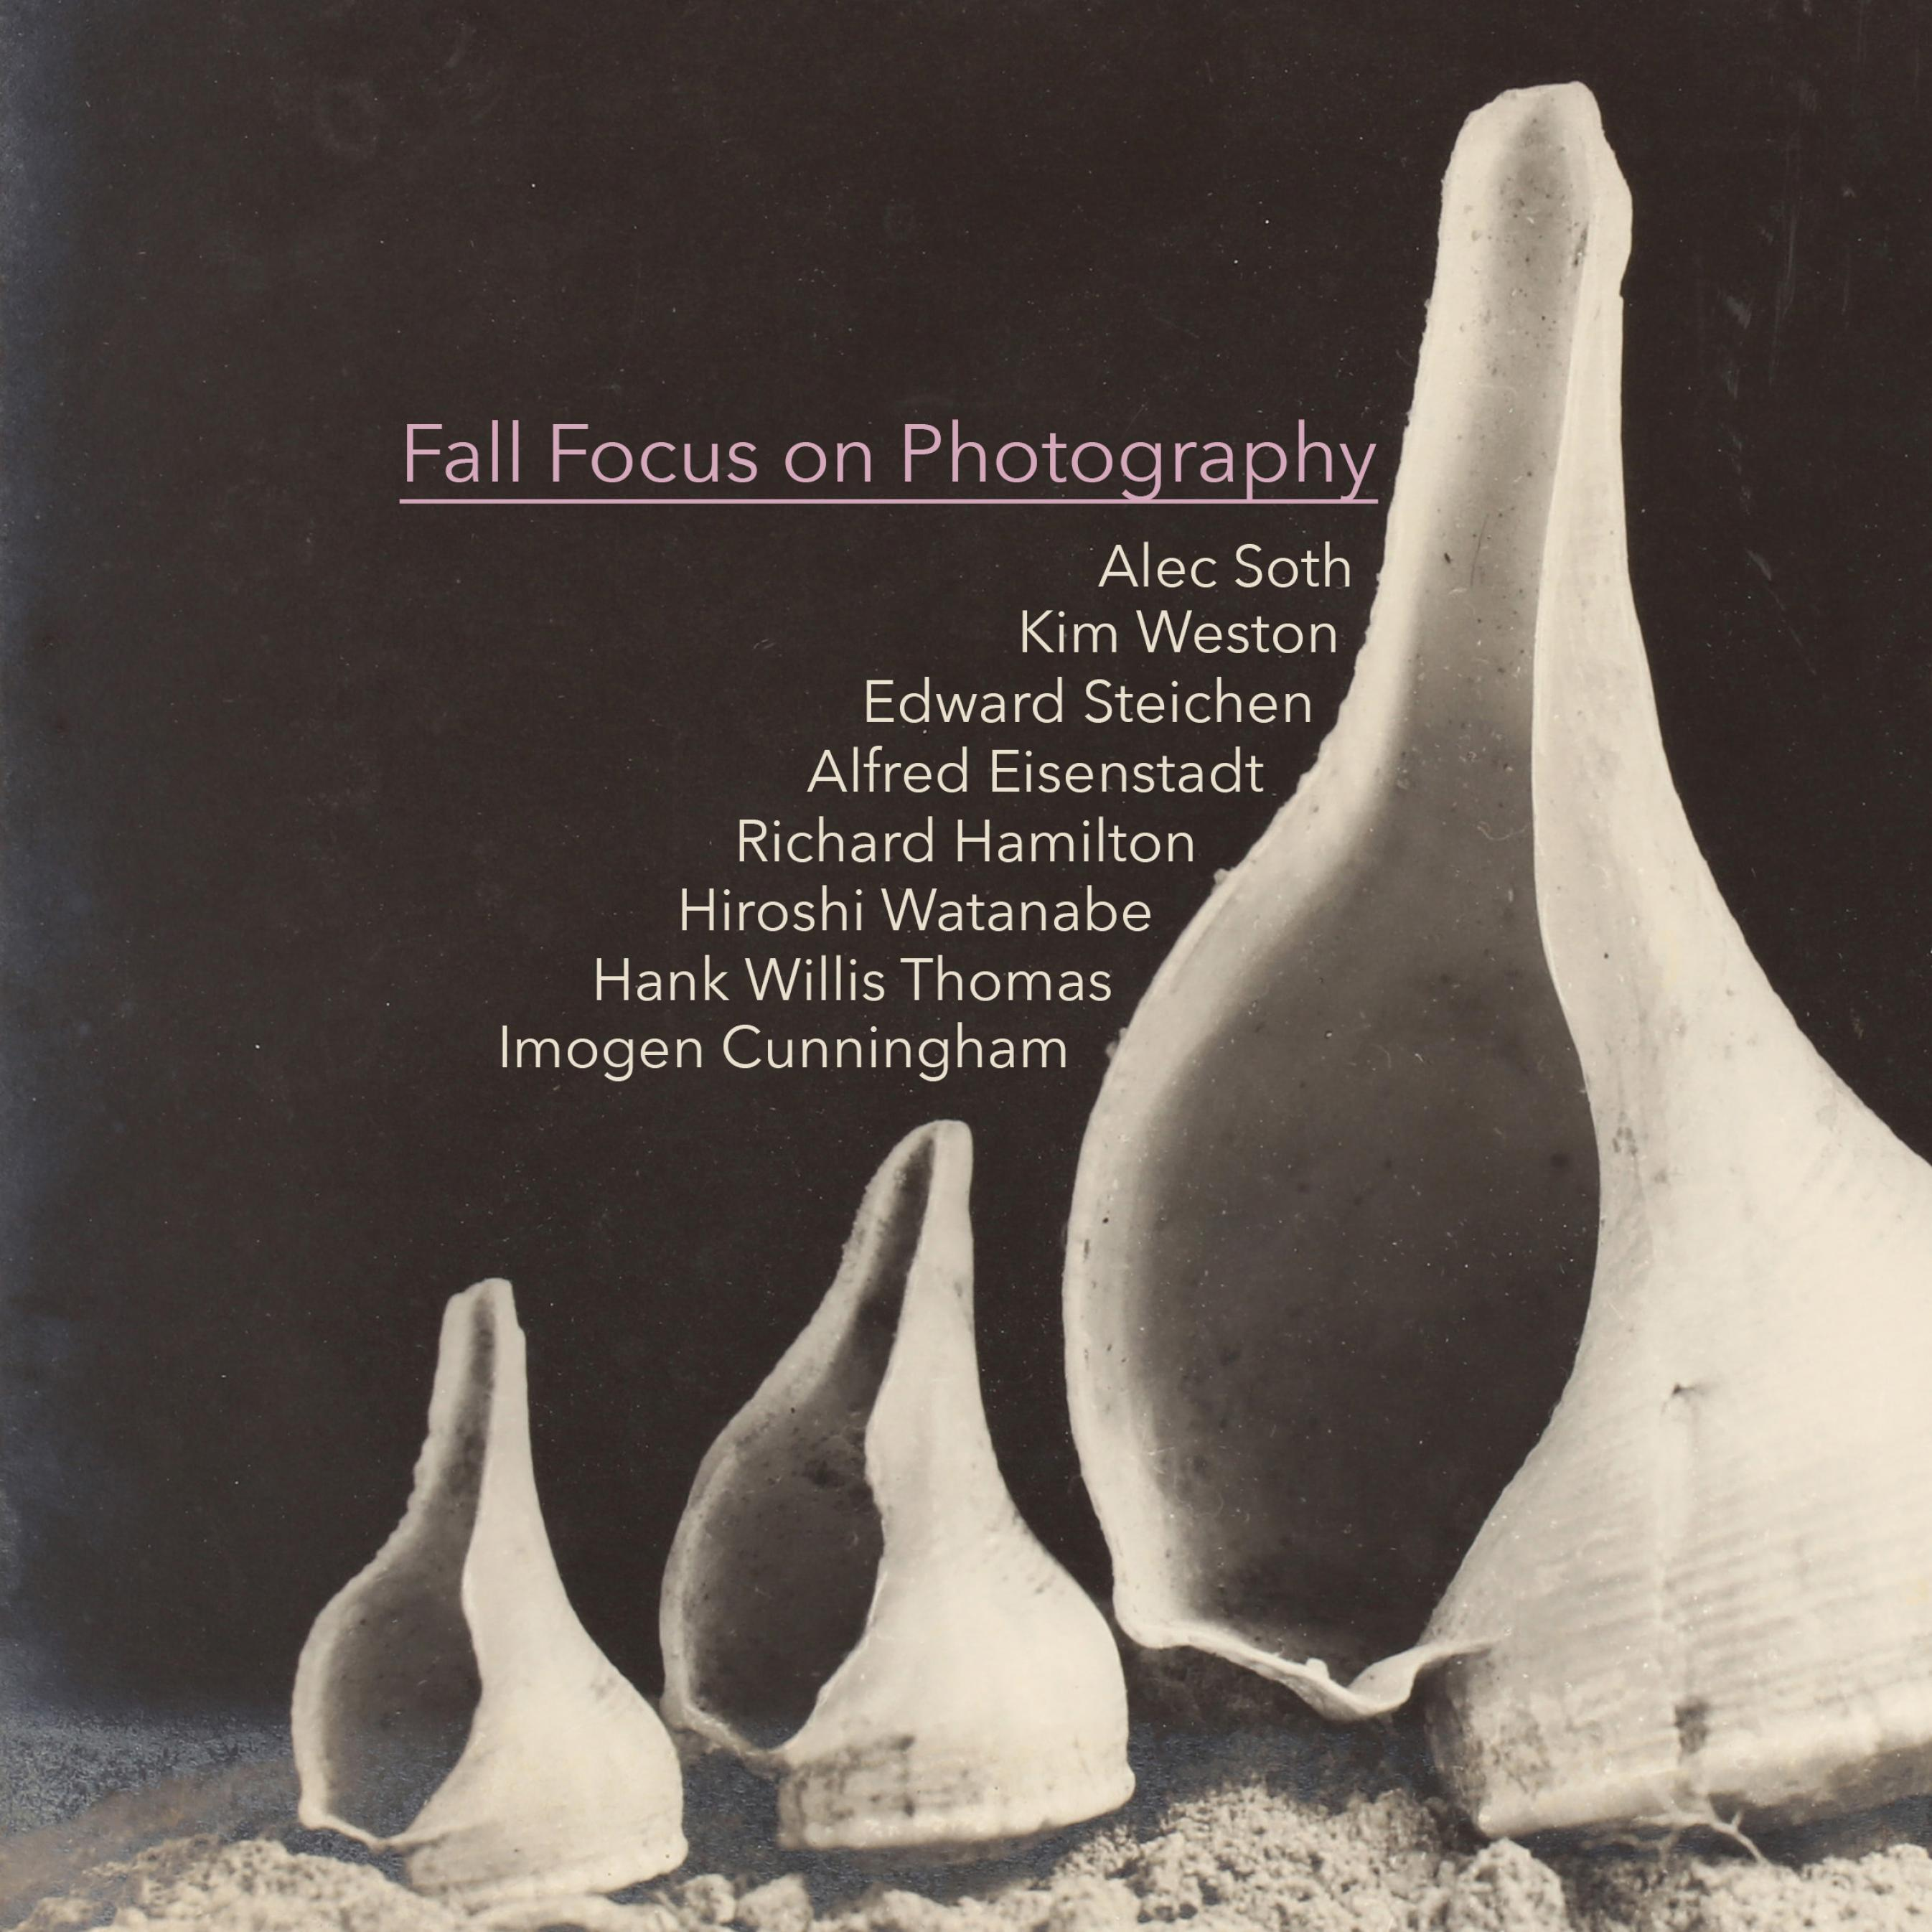 Fall Focus on Photography